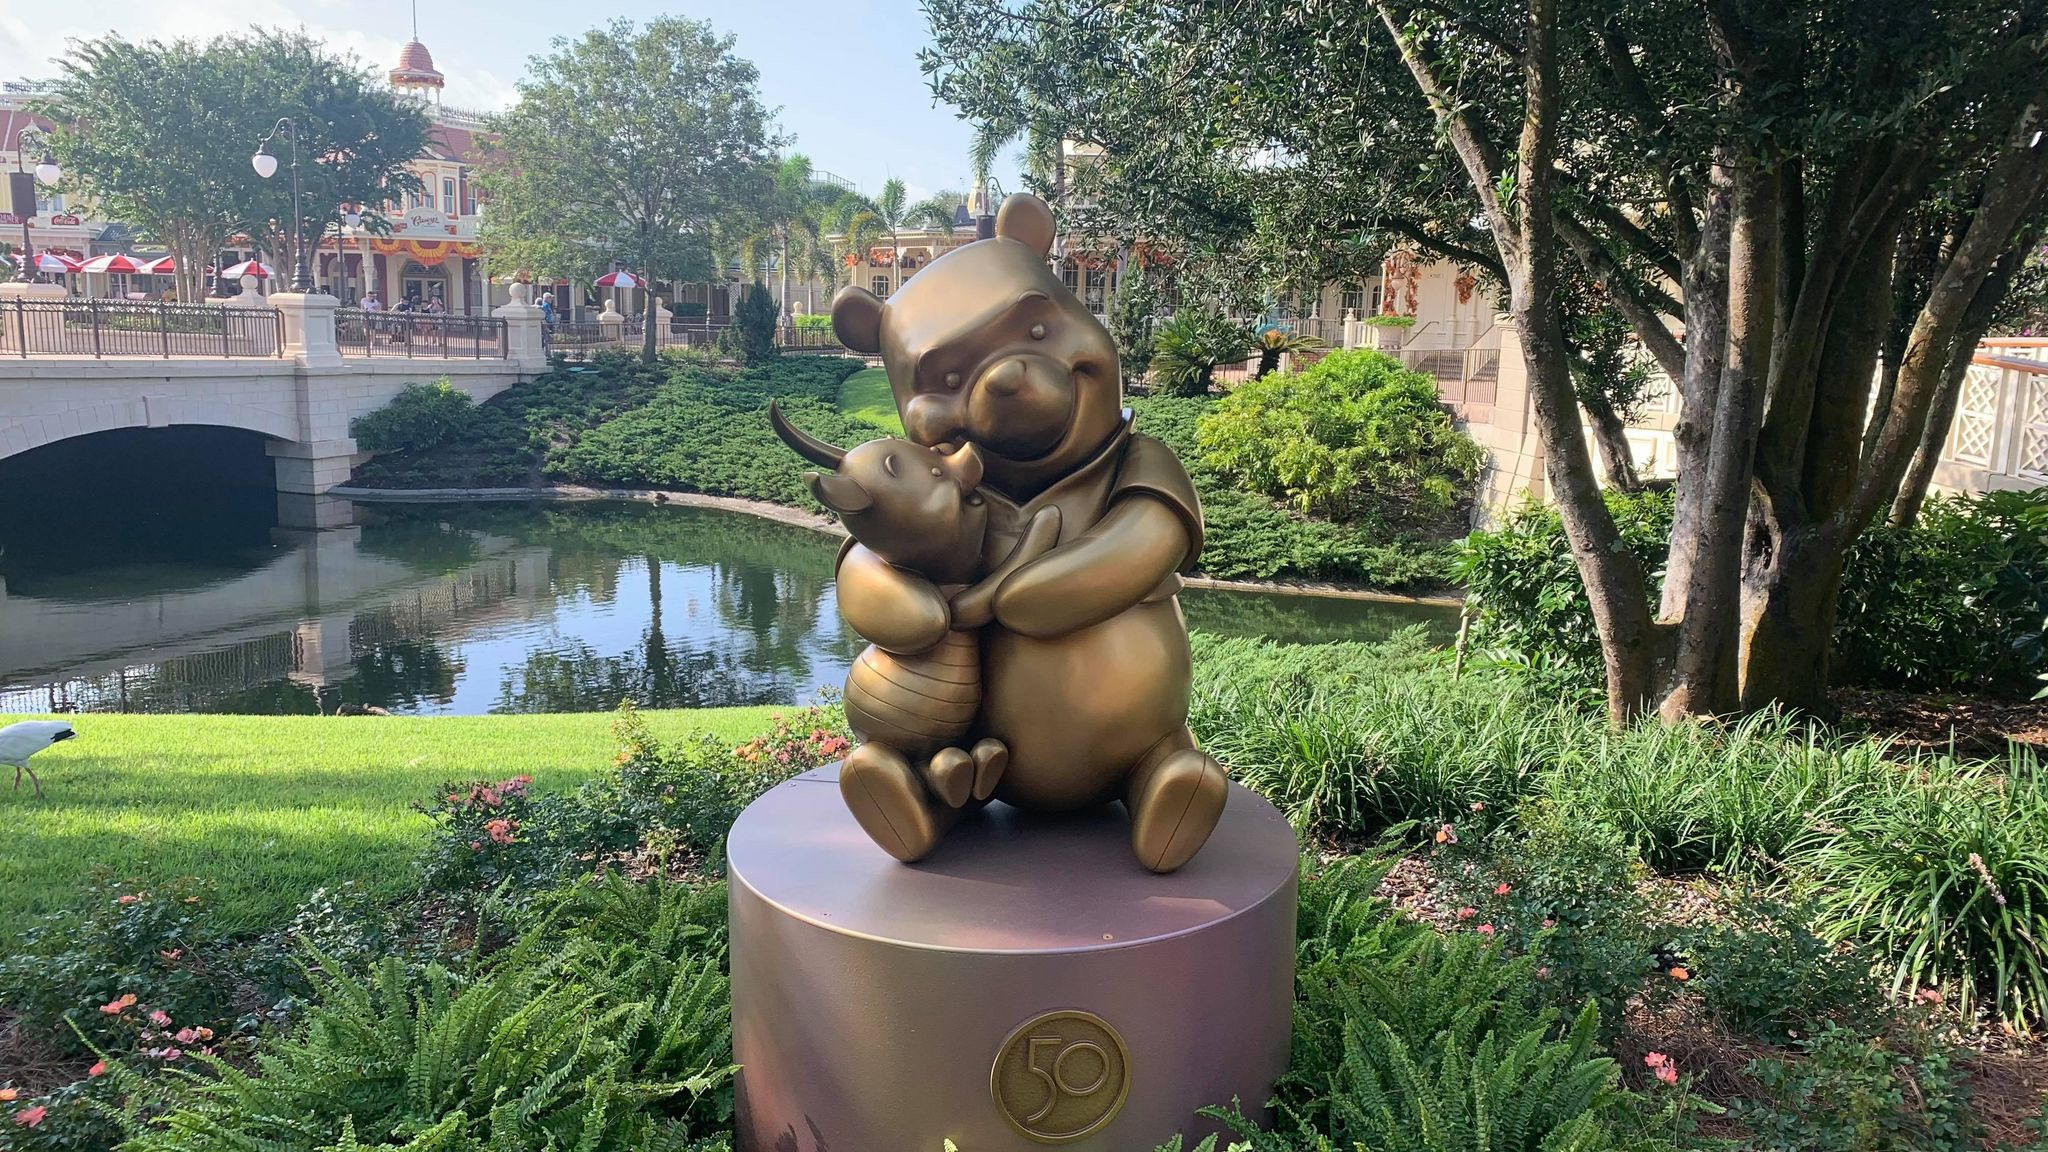 First Look: Disney Fab 50 statues now on display in the Magic Kingdom 8